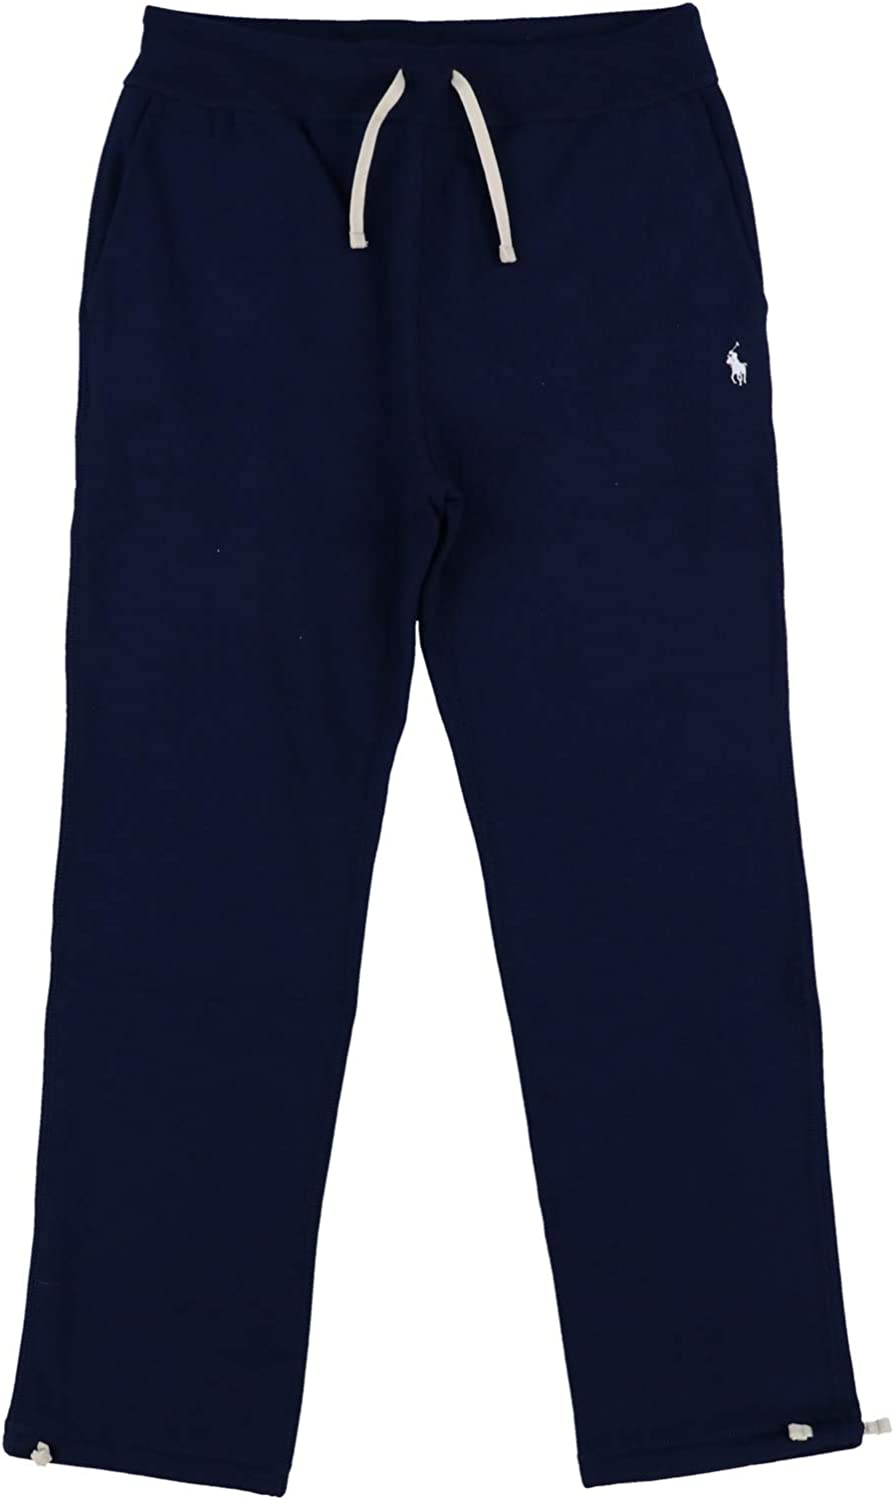 Ralph Lauren Polo Mens Fleece Athletic Pants